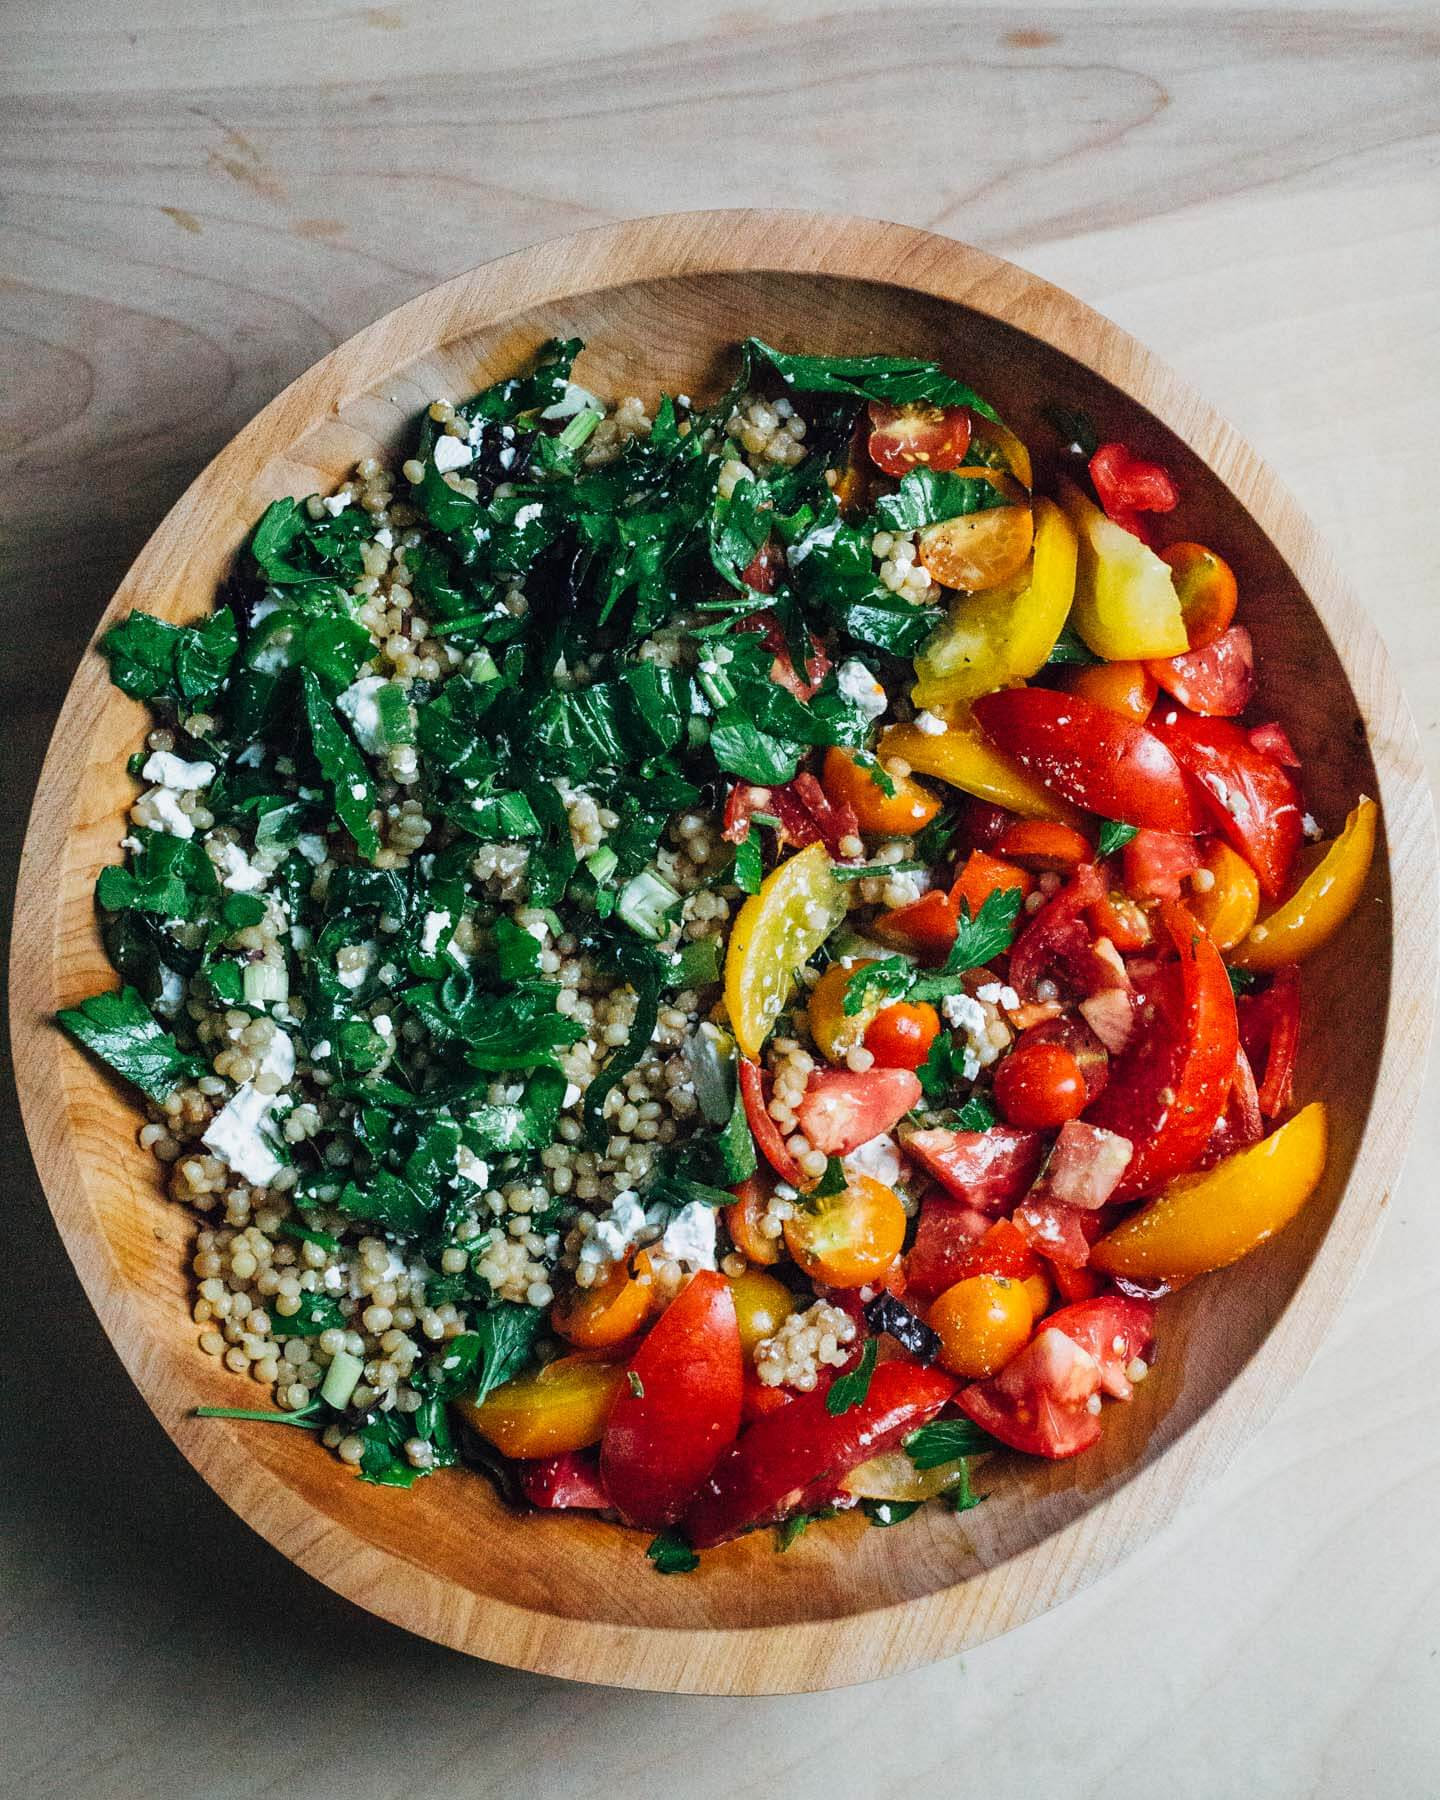 Toasted Pearl Couscous Salad With Tomatoes And Greens